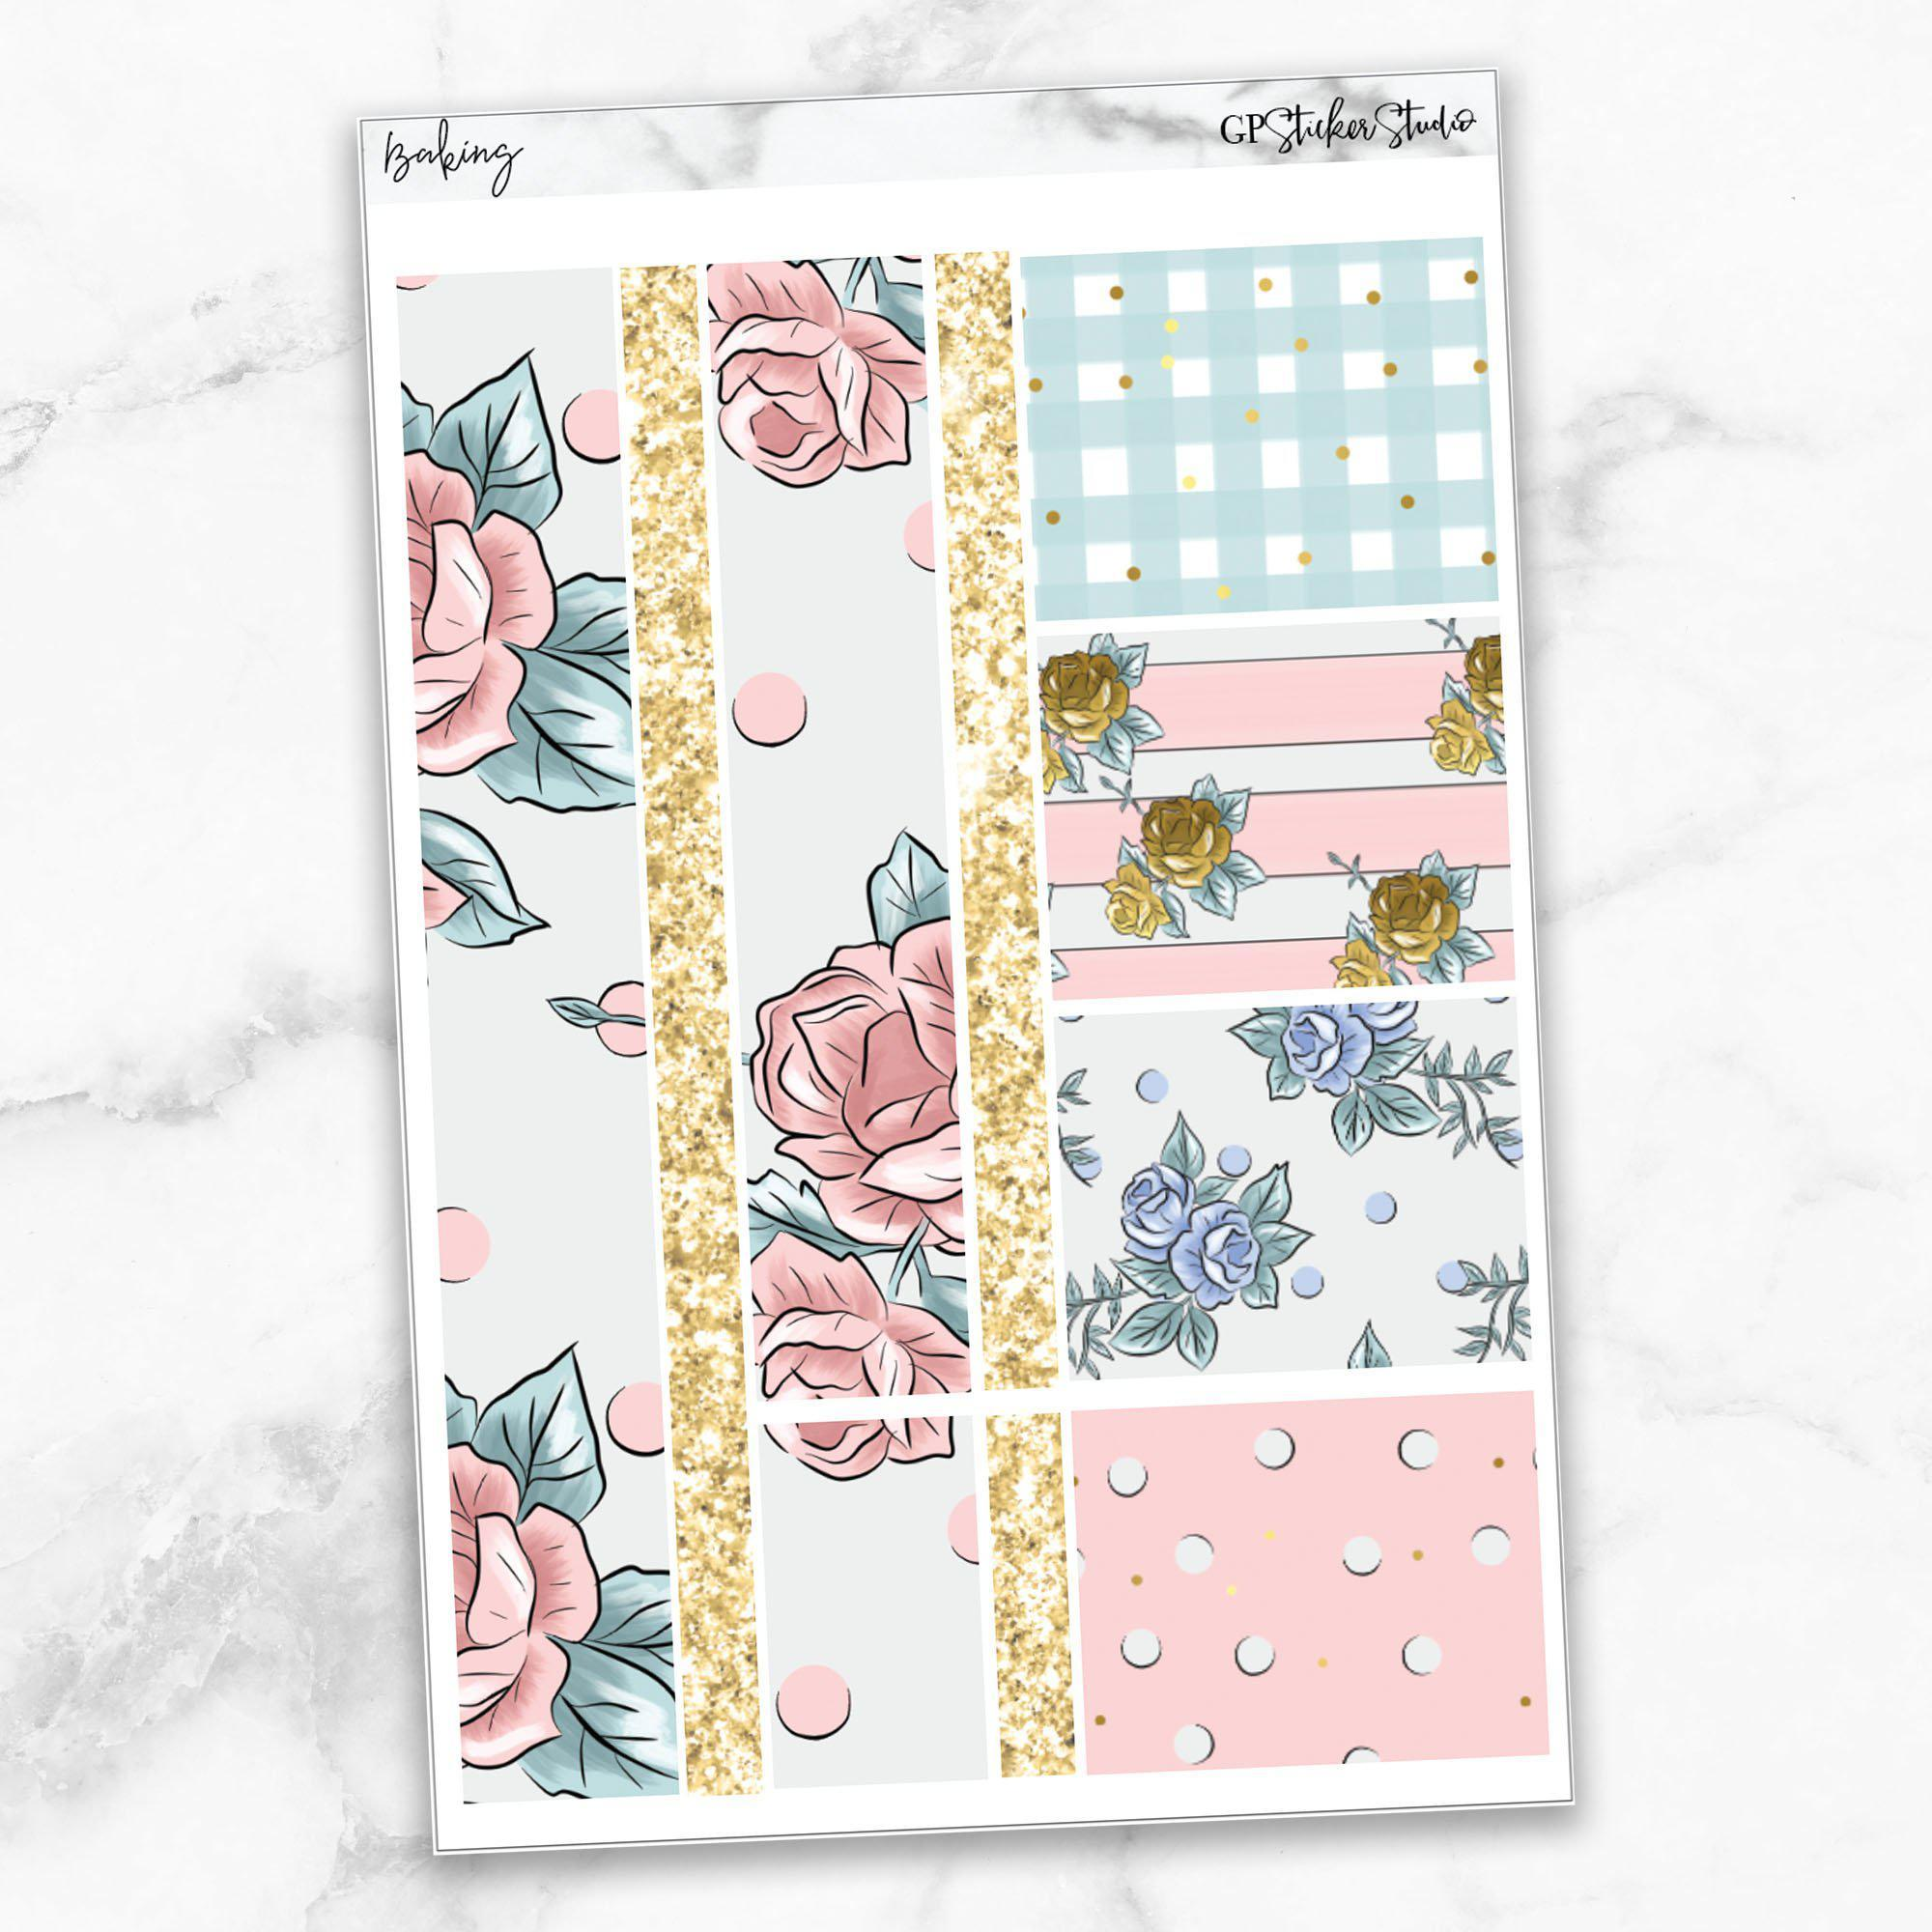 BAKING Washi Sheet Stickers-The GP Studio